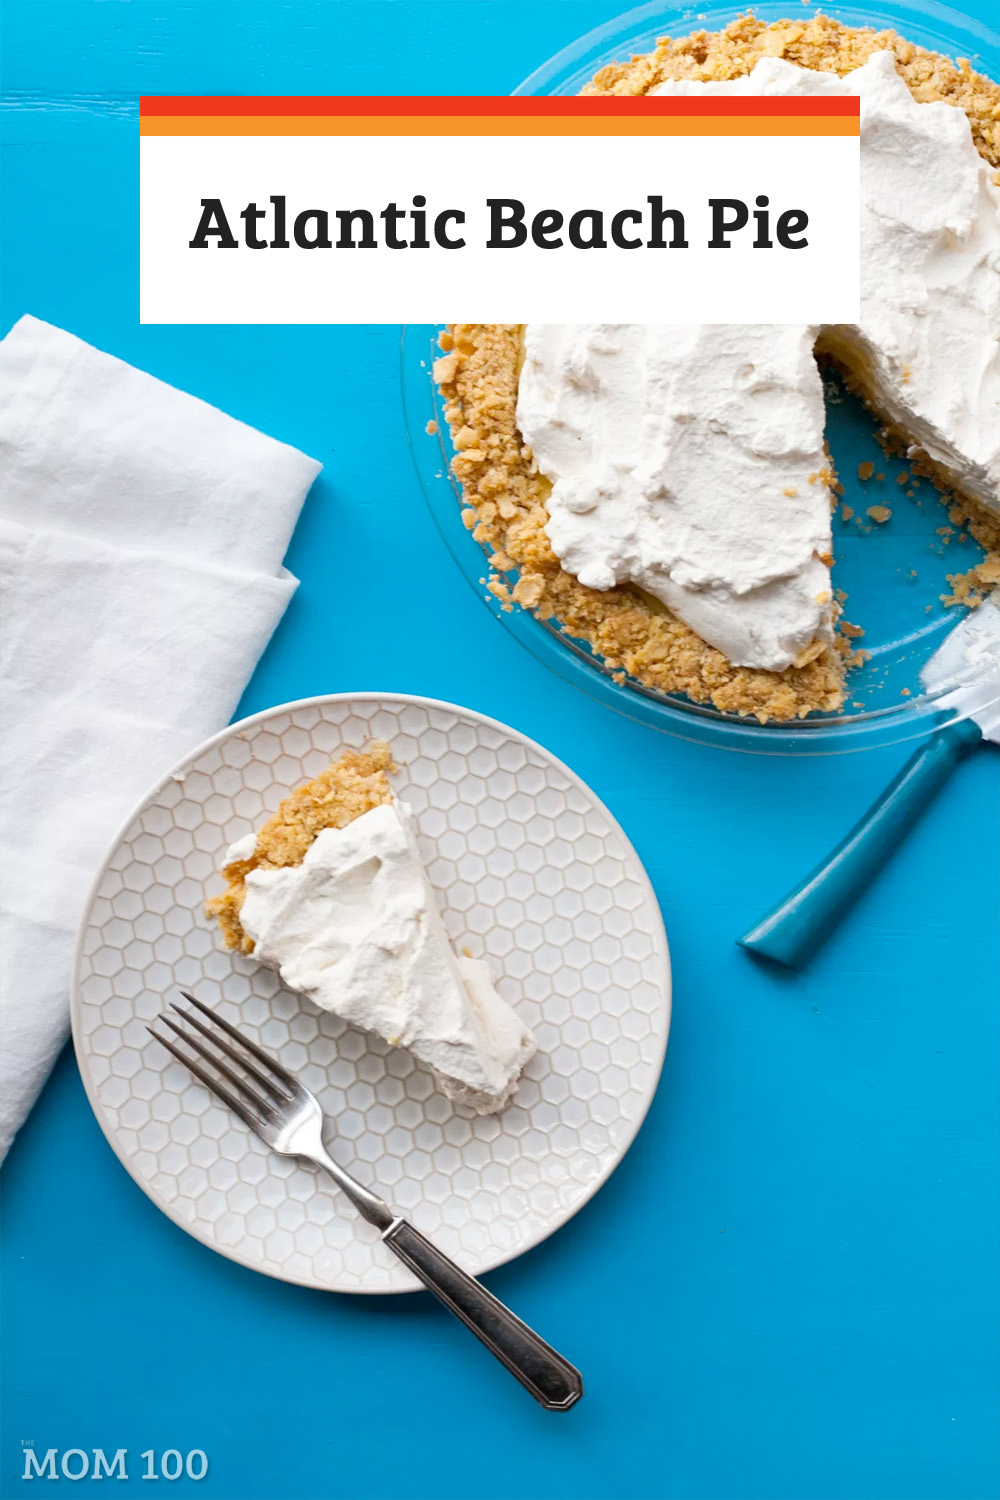 The famous Atlantic Beach Pie, as heard/seen on NPR and The New York Times! A saltine crust filled with creamy citrus filling and topped with whipped cream. Amazing. #pie #lemonpie #citrus #dessert